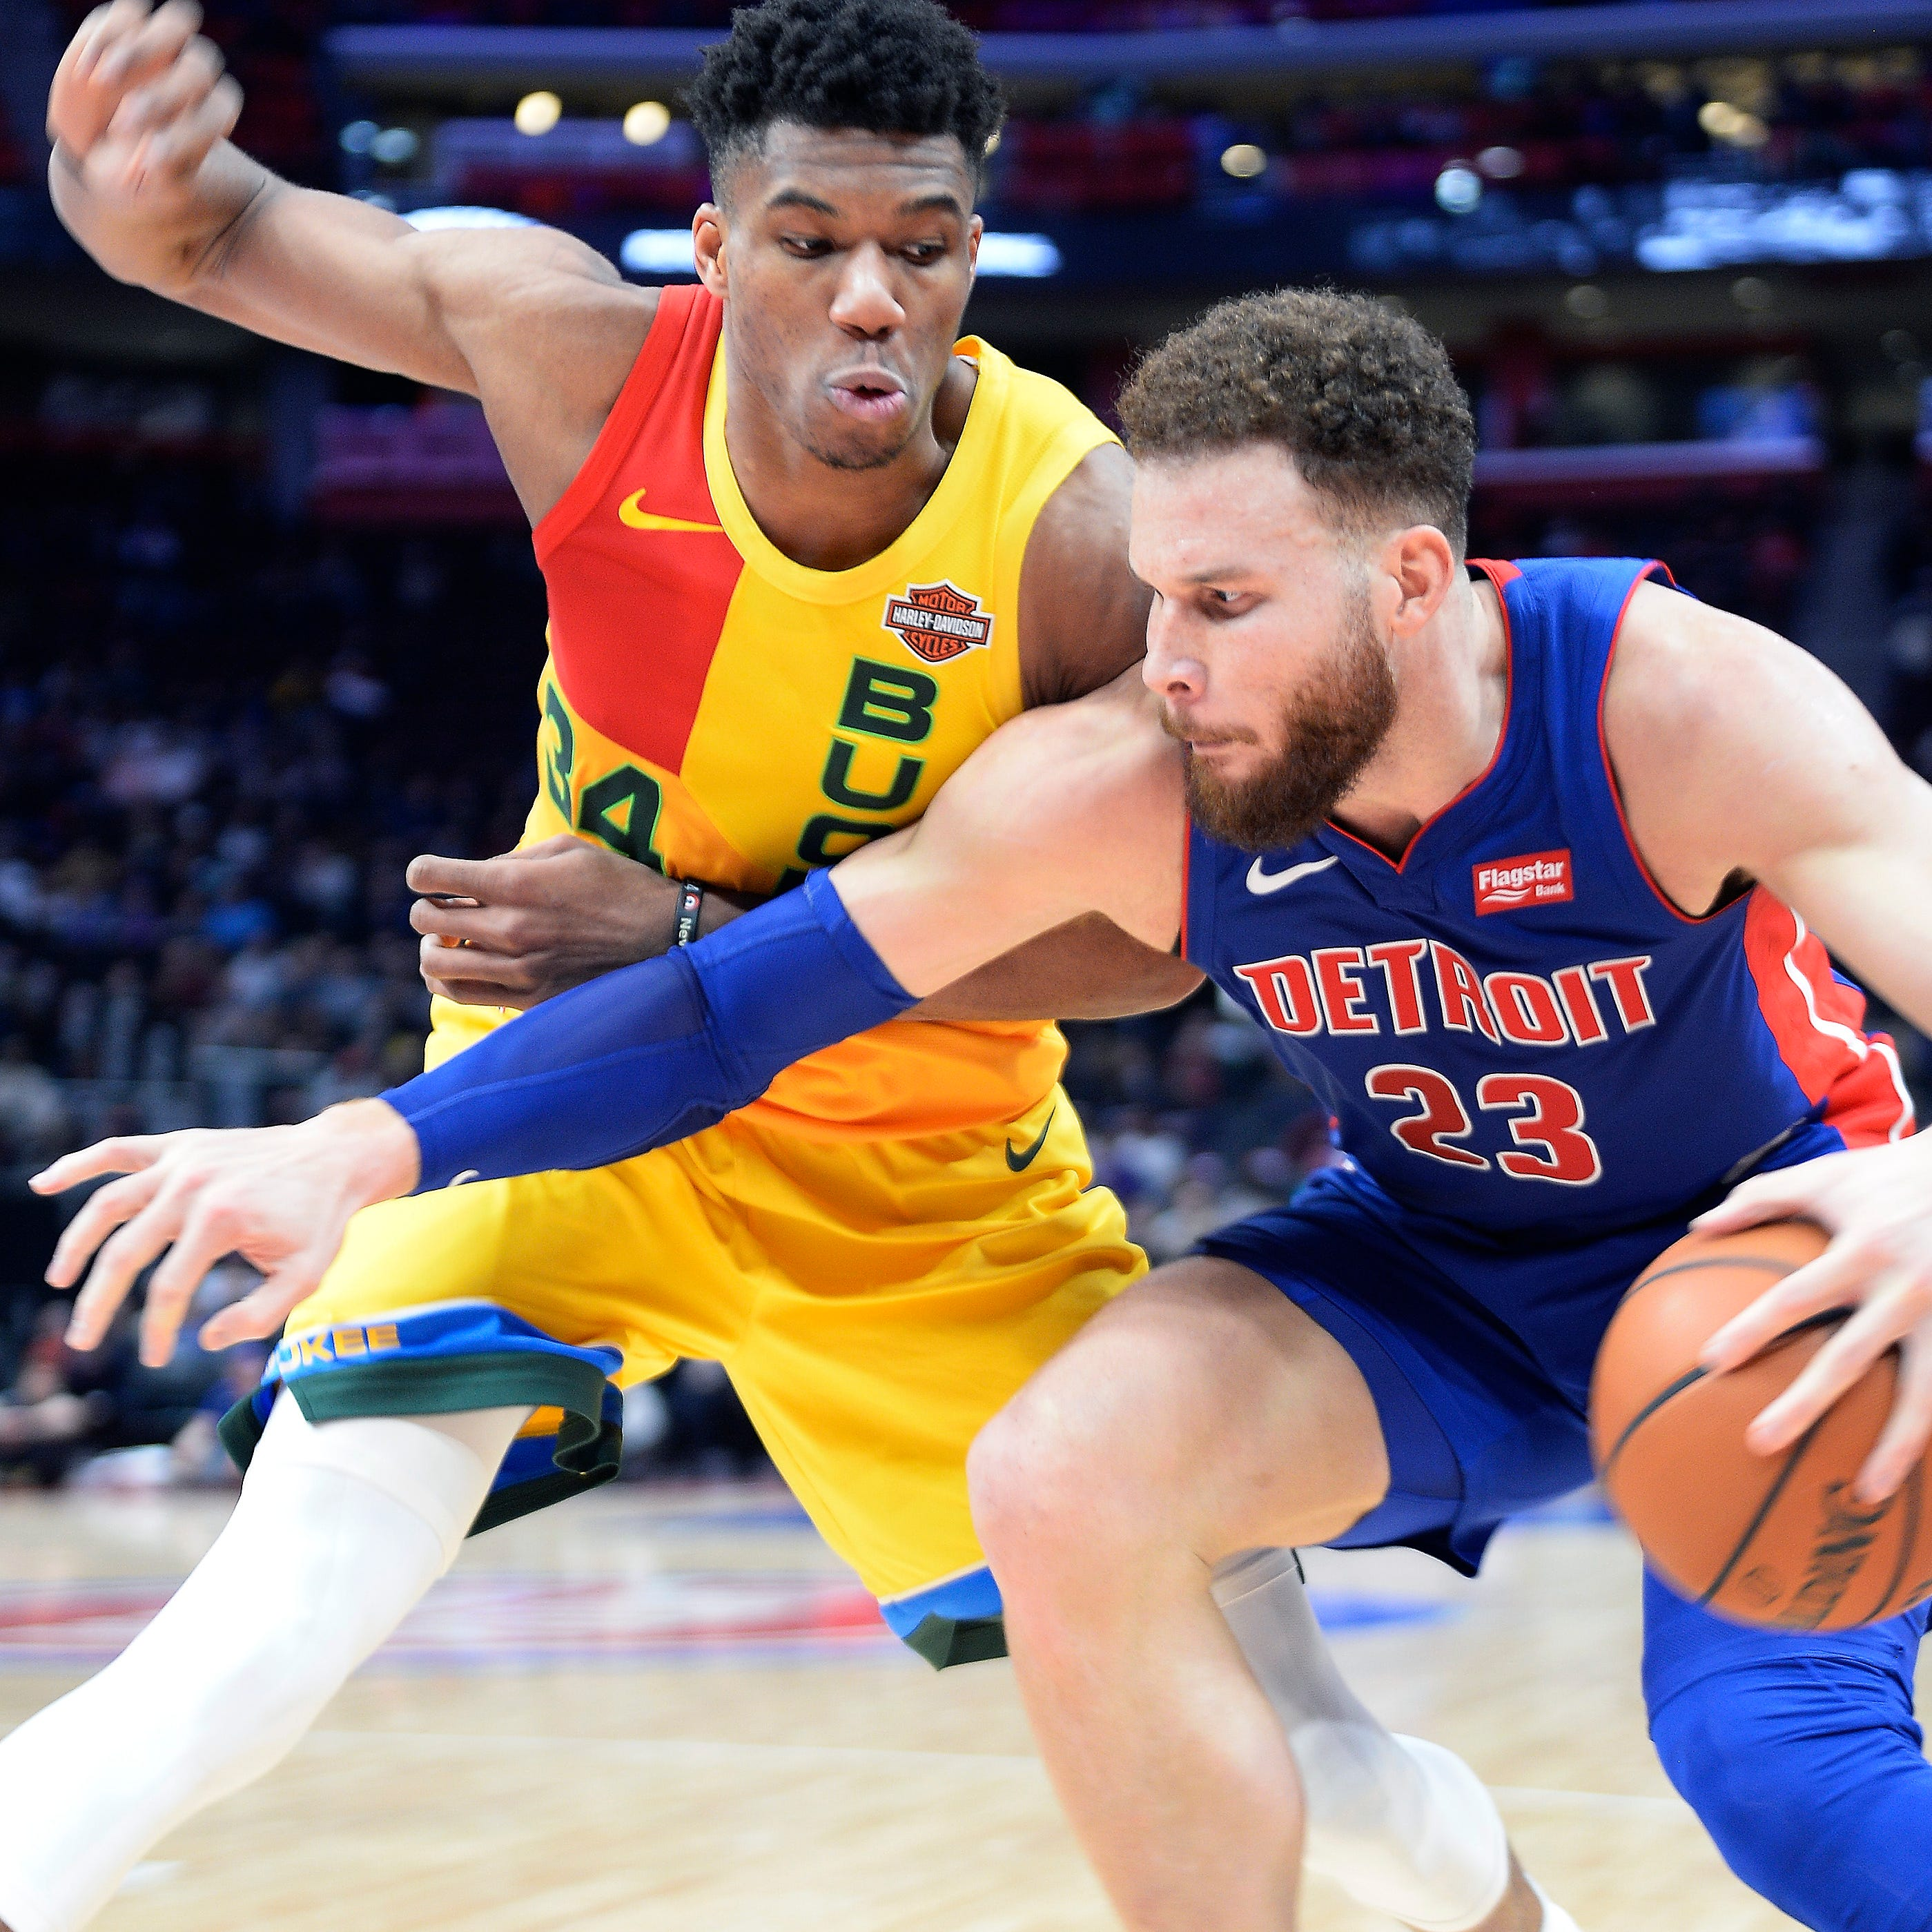 Blake Griffin's status uncertain, but Pistons say they 'can still make noise' vs. Bucks